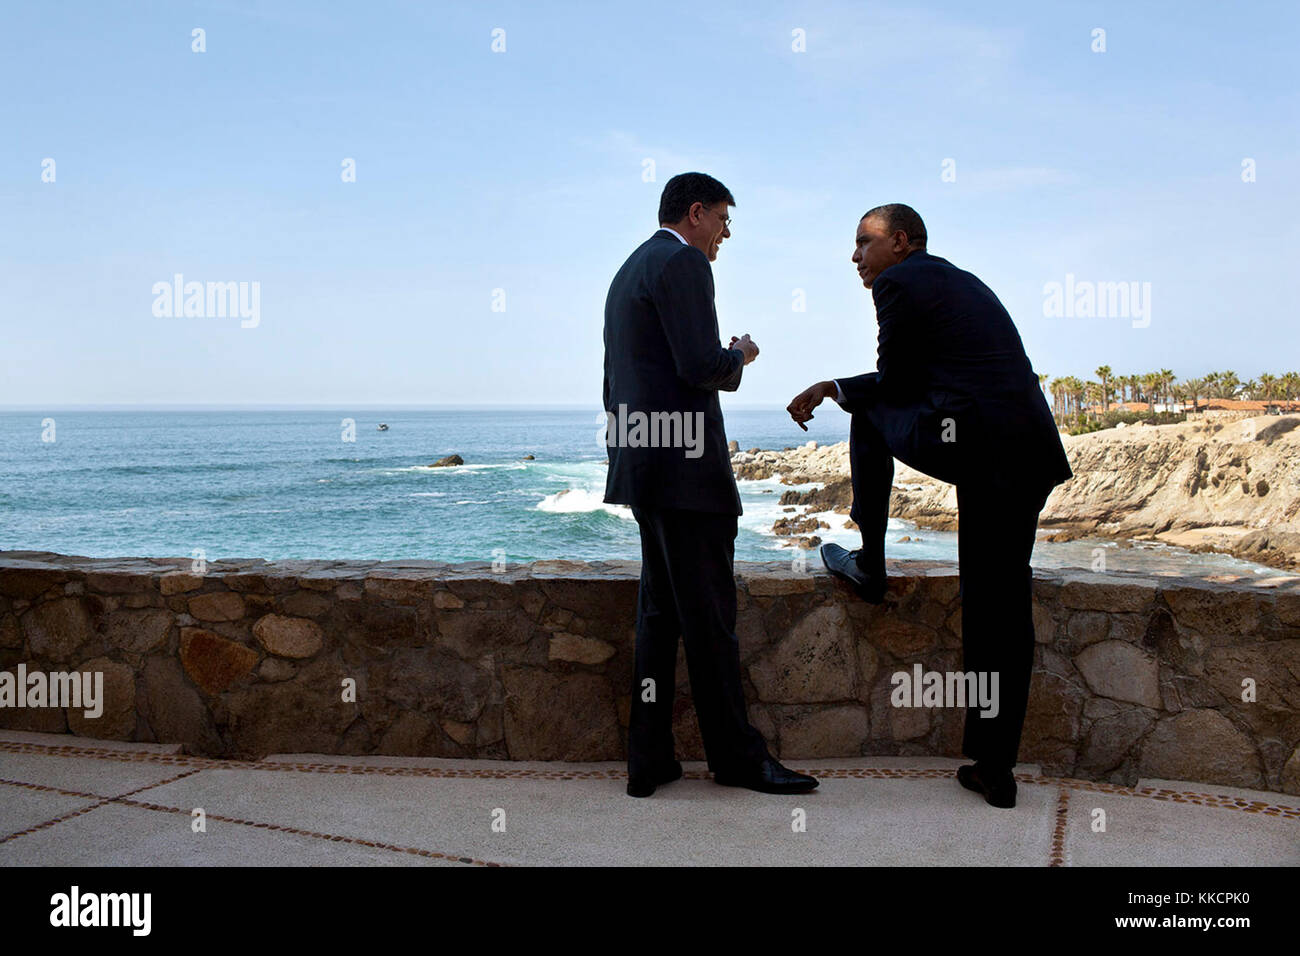 """June 18, 2012 """"We were in Mexico for tk summit. While the President was waiting for Russian President Vladimir Putin Stock Photo"""